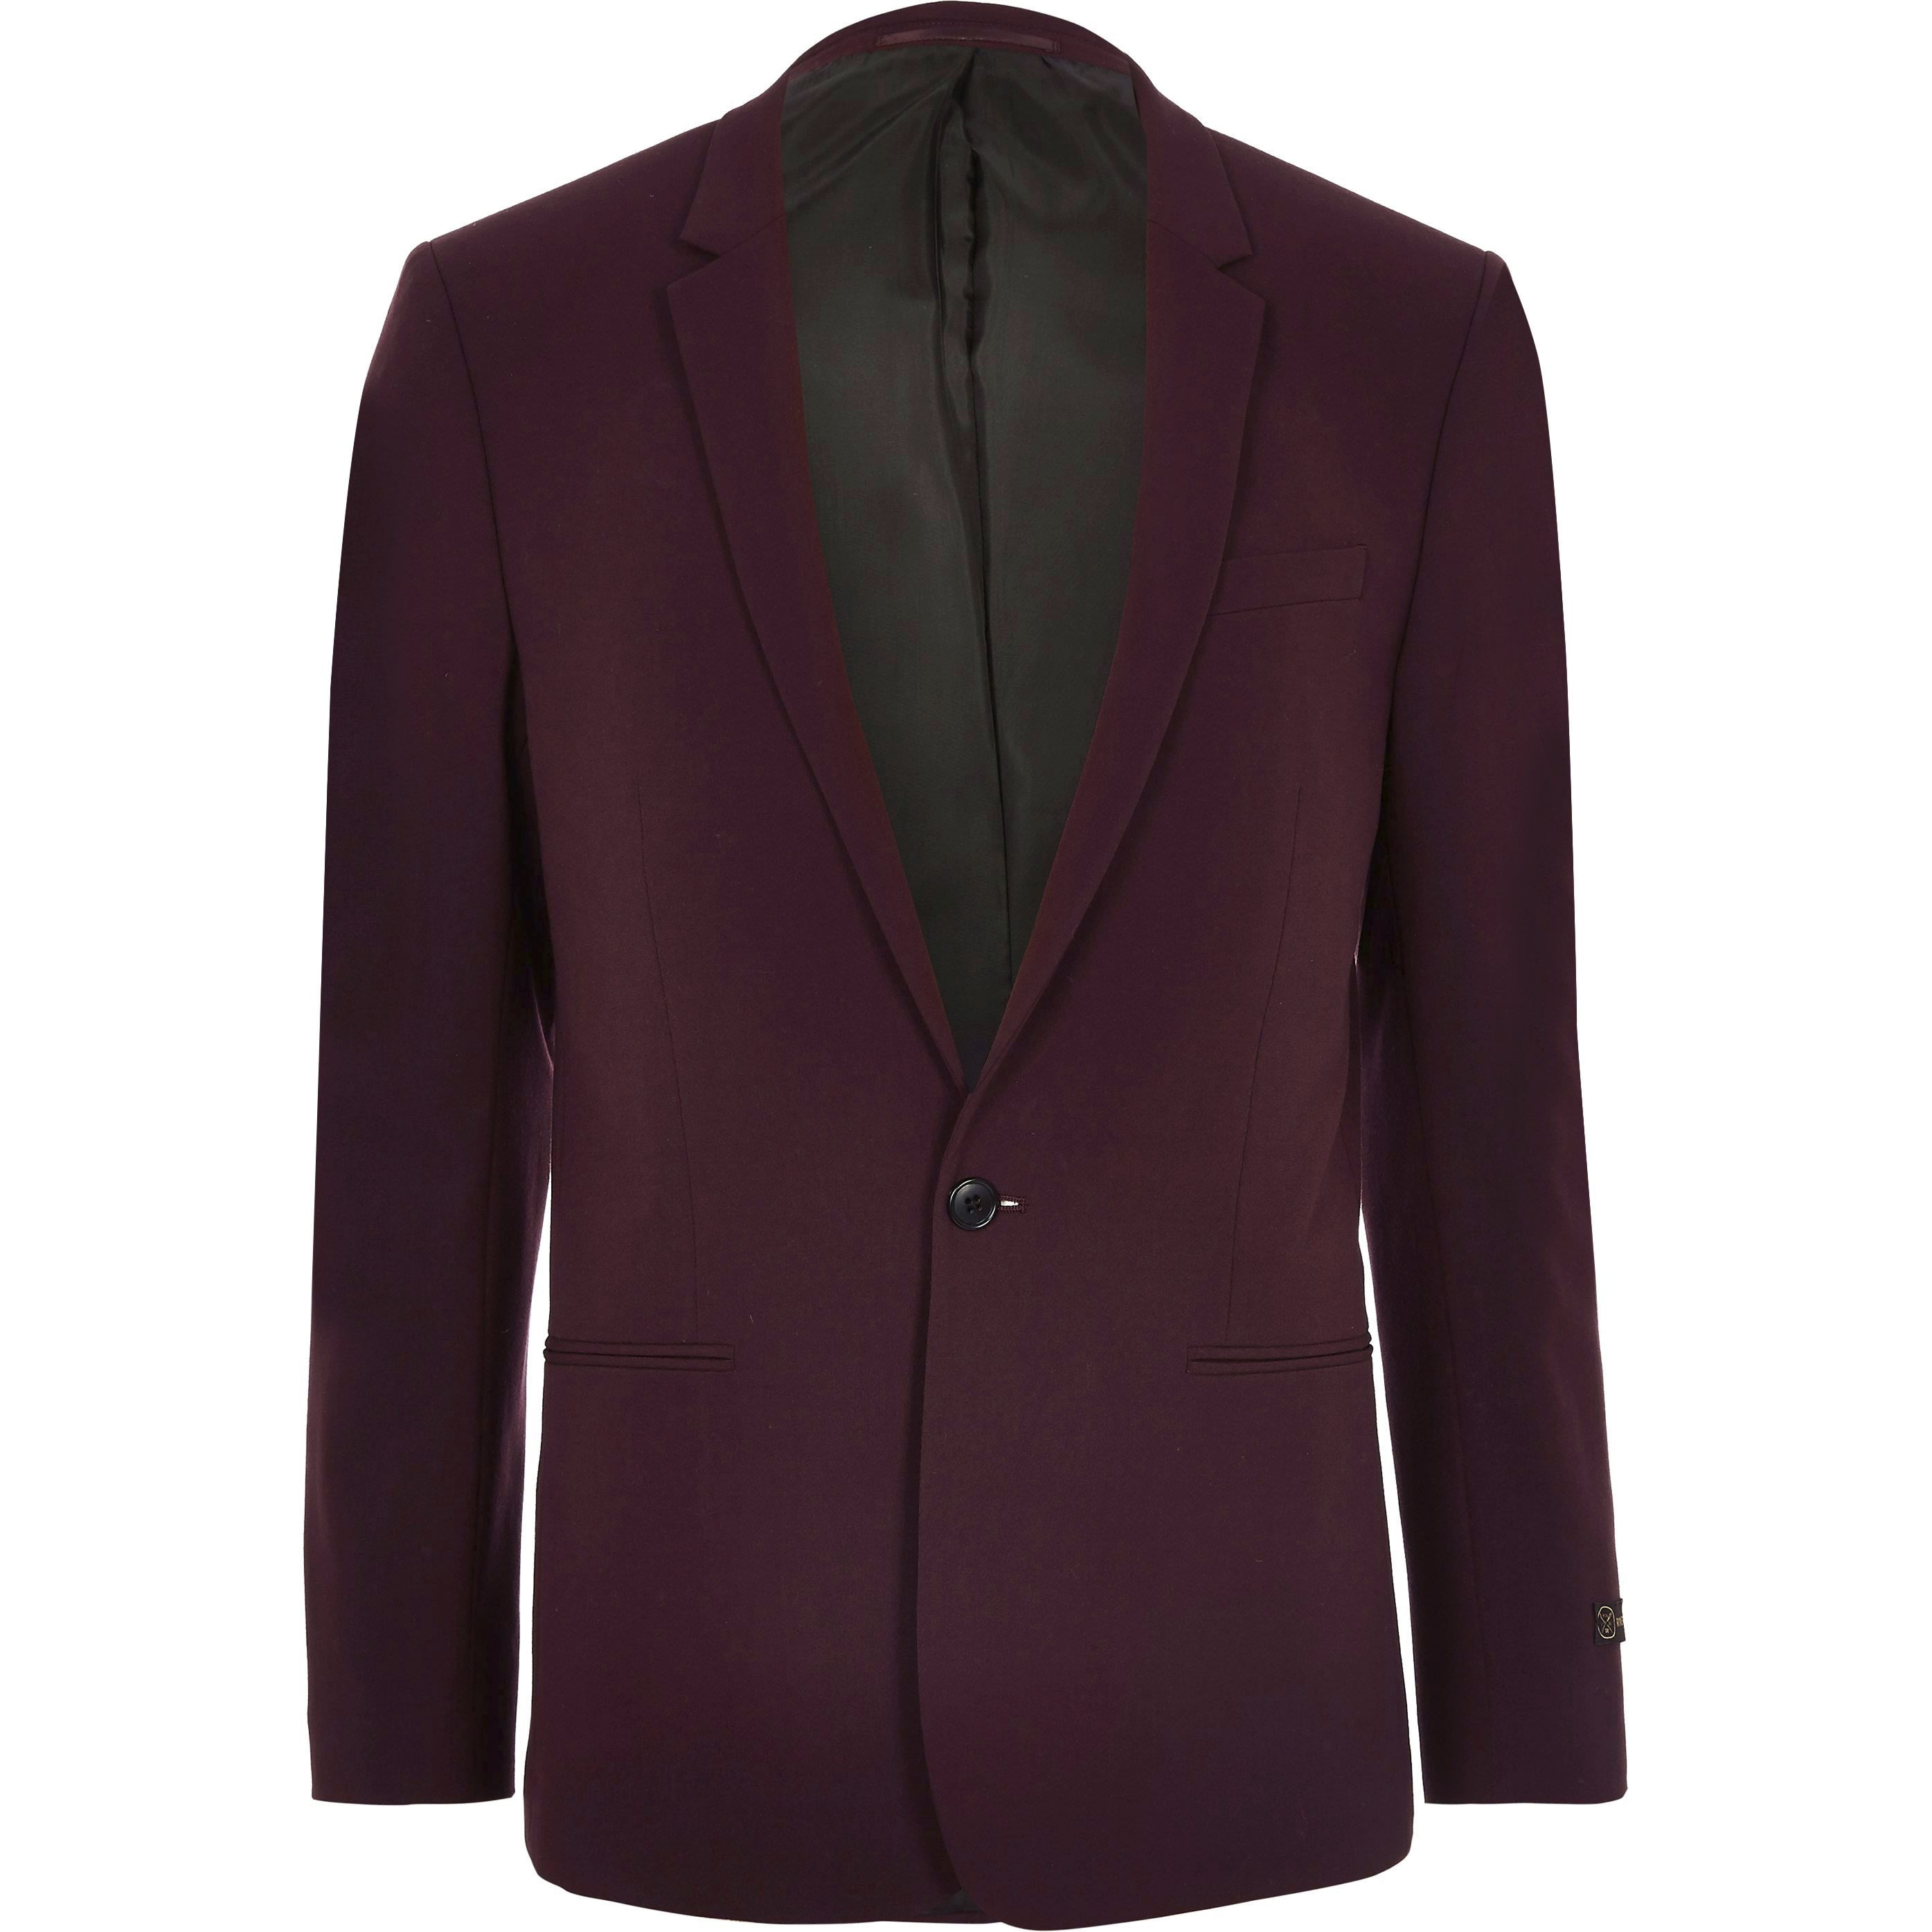 River Island - big and tall dark  suit jacket - 1